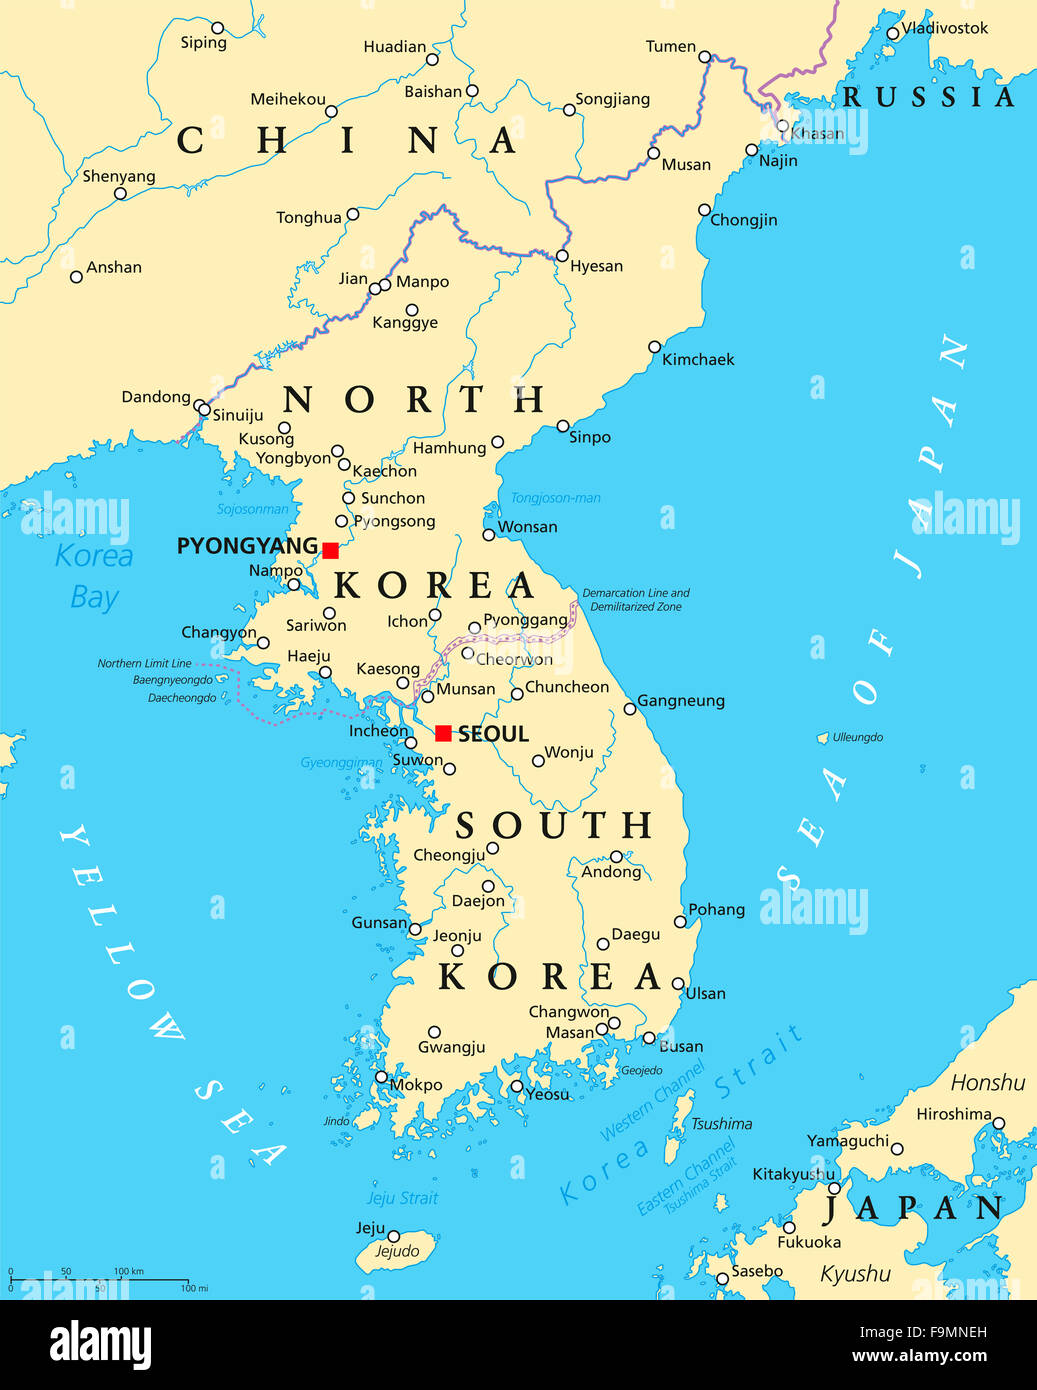 About South Korea Korean Peninsula Political Map With North And South Korea And The